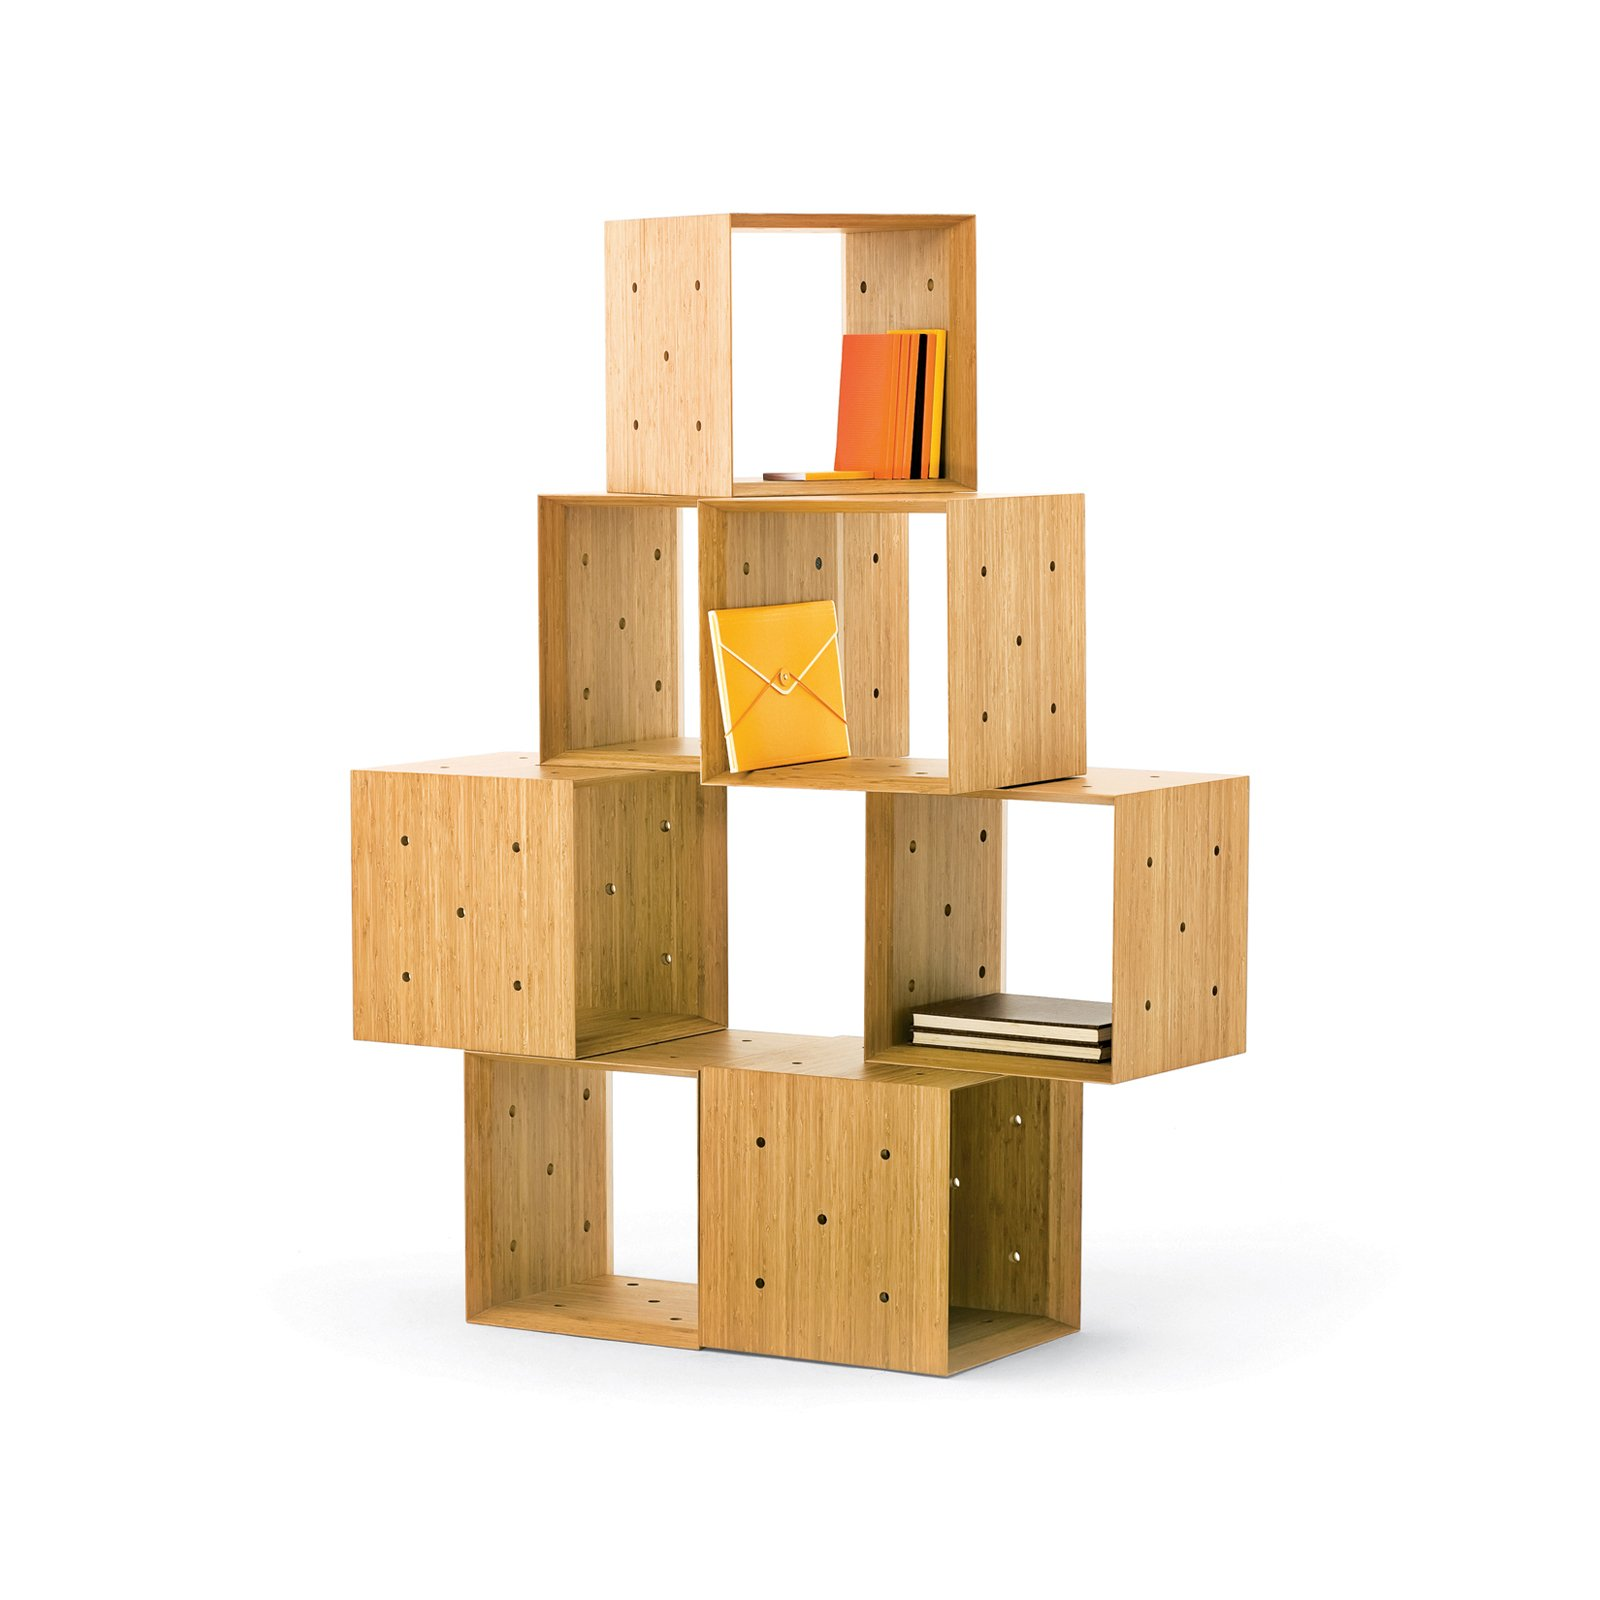 These blocky units lock together with the help of five holes per side––allowing them to take the shape of a miniature library, a bench, or an asymmetrical shelving unit. Read more about this clutter buster here.